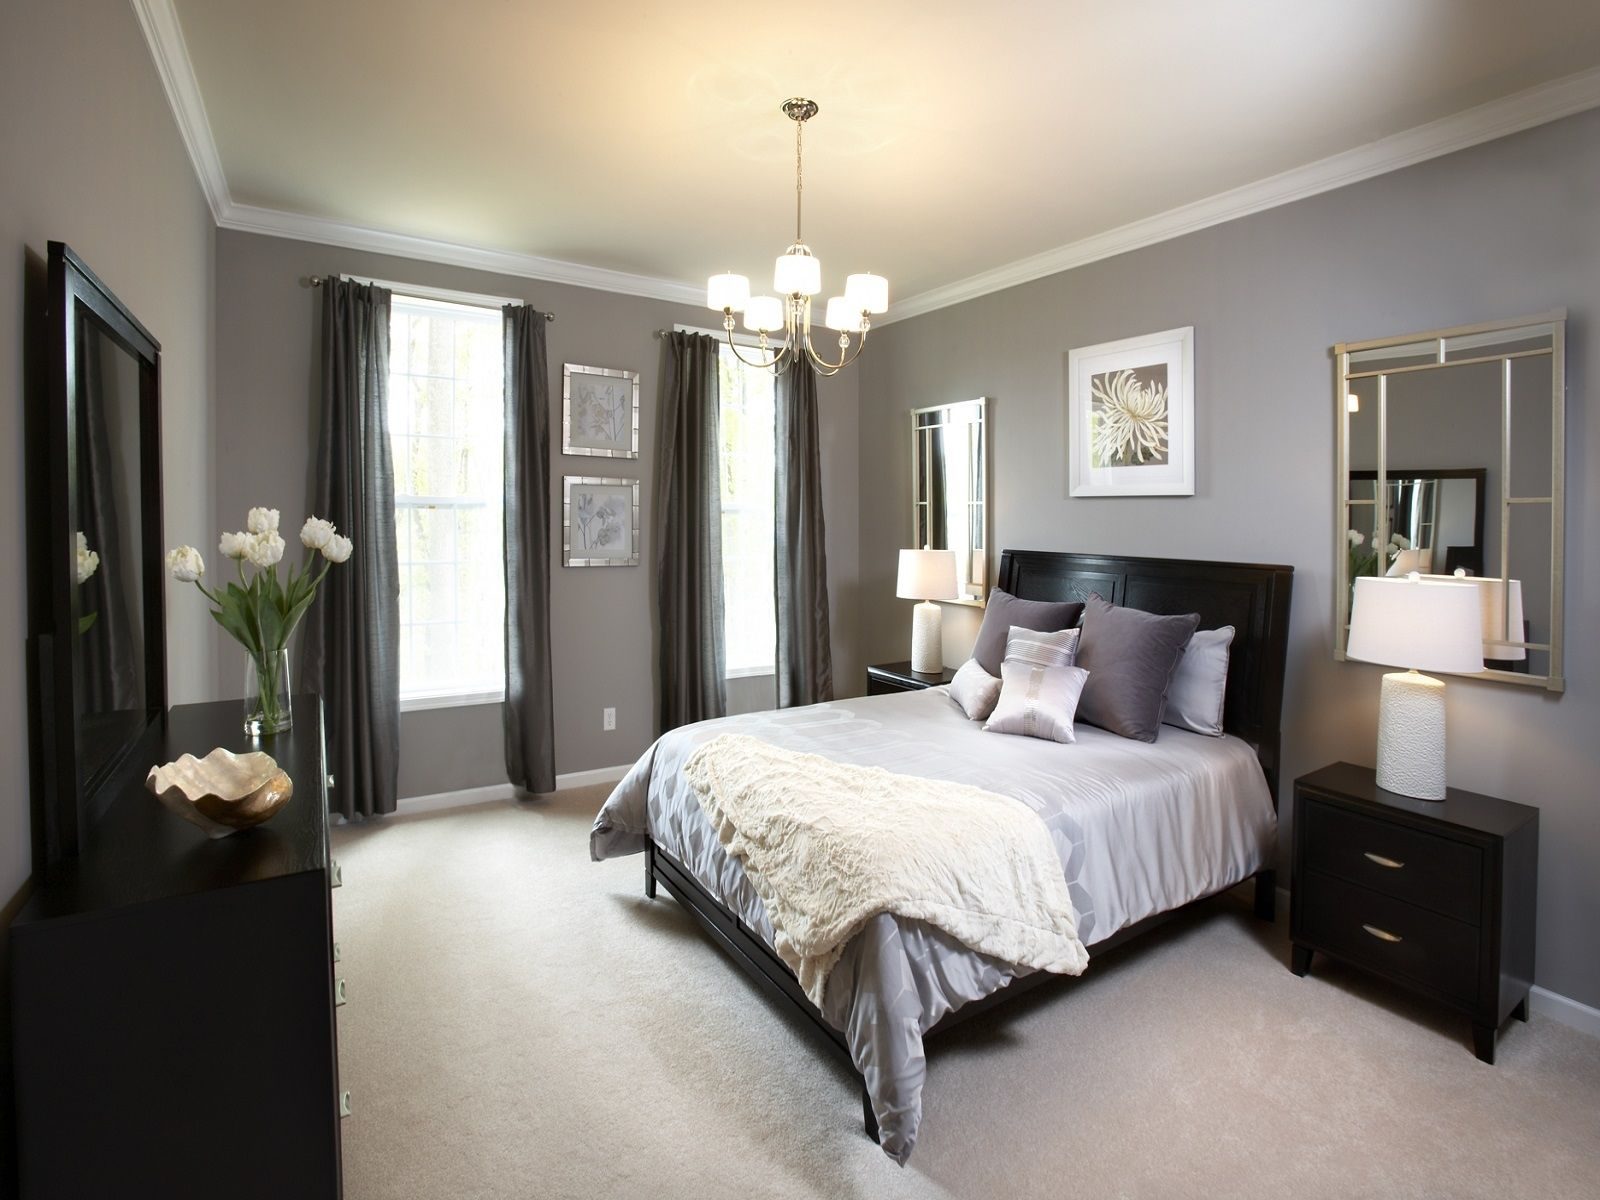 best 25+ black and grey bedding ideas on pinterest | grey bed room